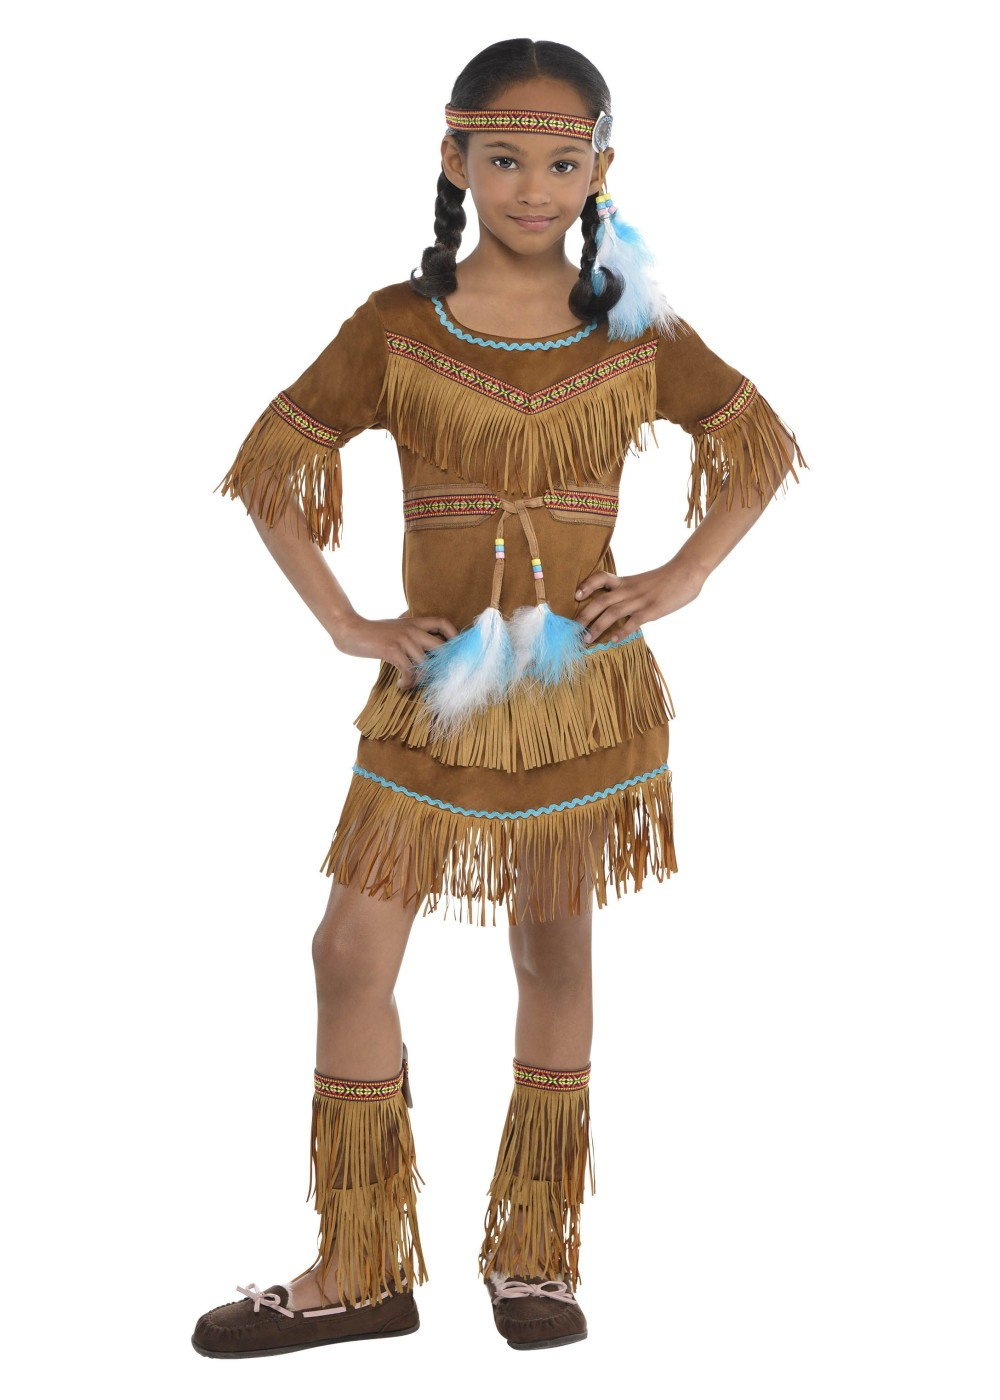 native american chief boys costume 2562 dream catcher cutie girl costume - Native American Costume Halloween